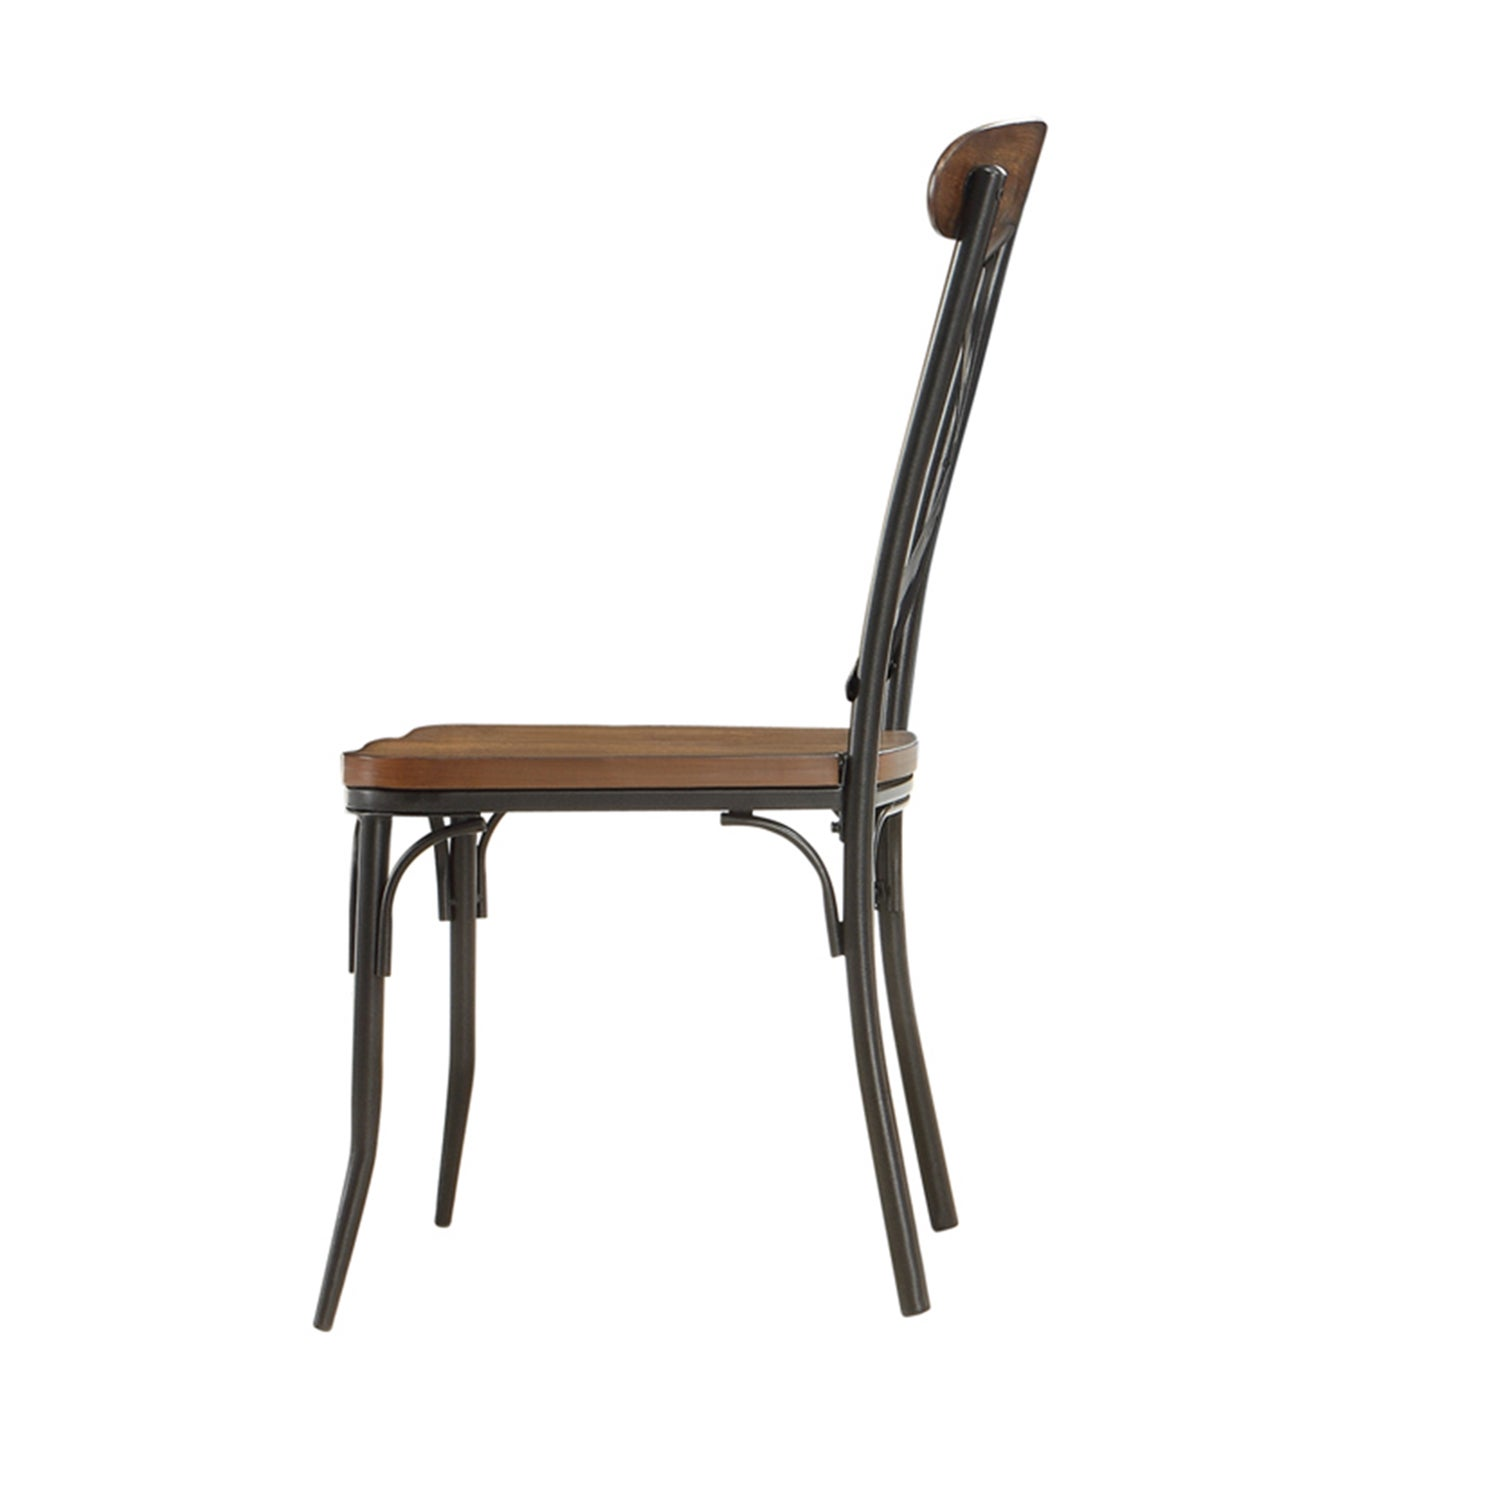 Shop Nelson Industrial Modern Rustic Cross Back Dining Chair By INSPIRE Q Classic Set Of 2